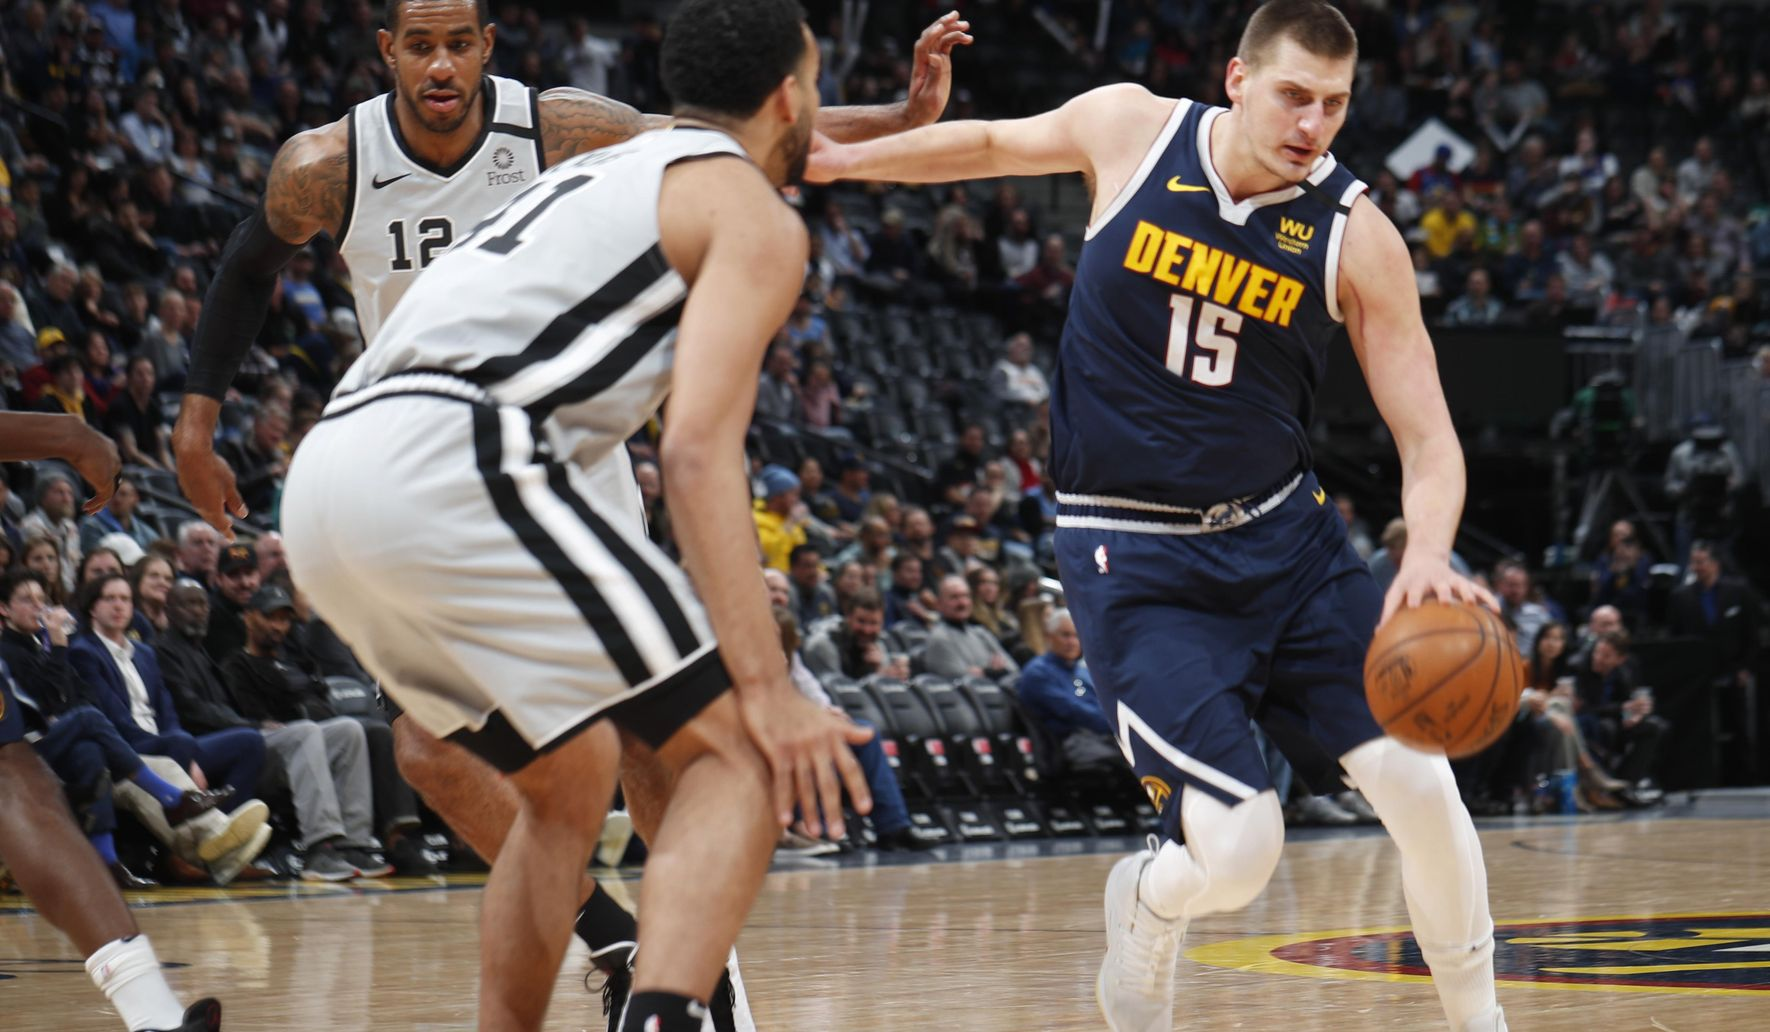 Spurs_nuggets_basketball_48828_c0-272-4422-2850_s1770x1032